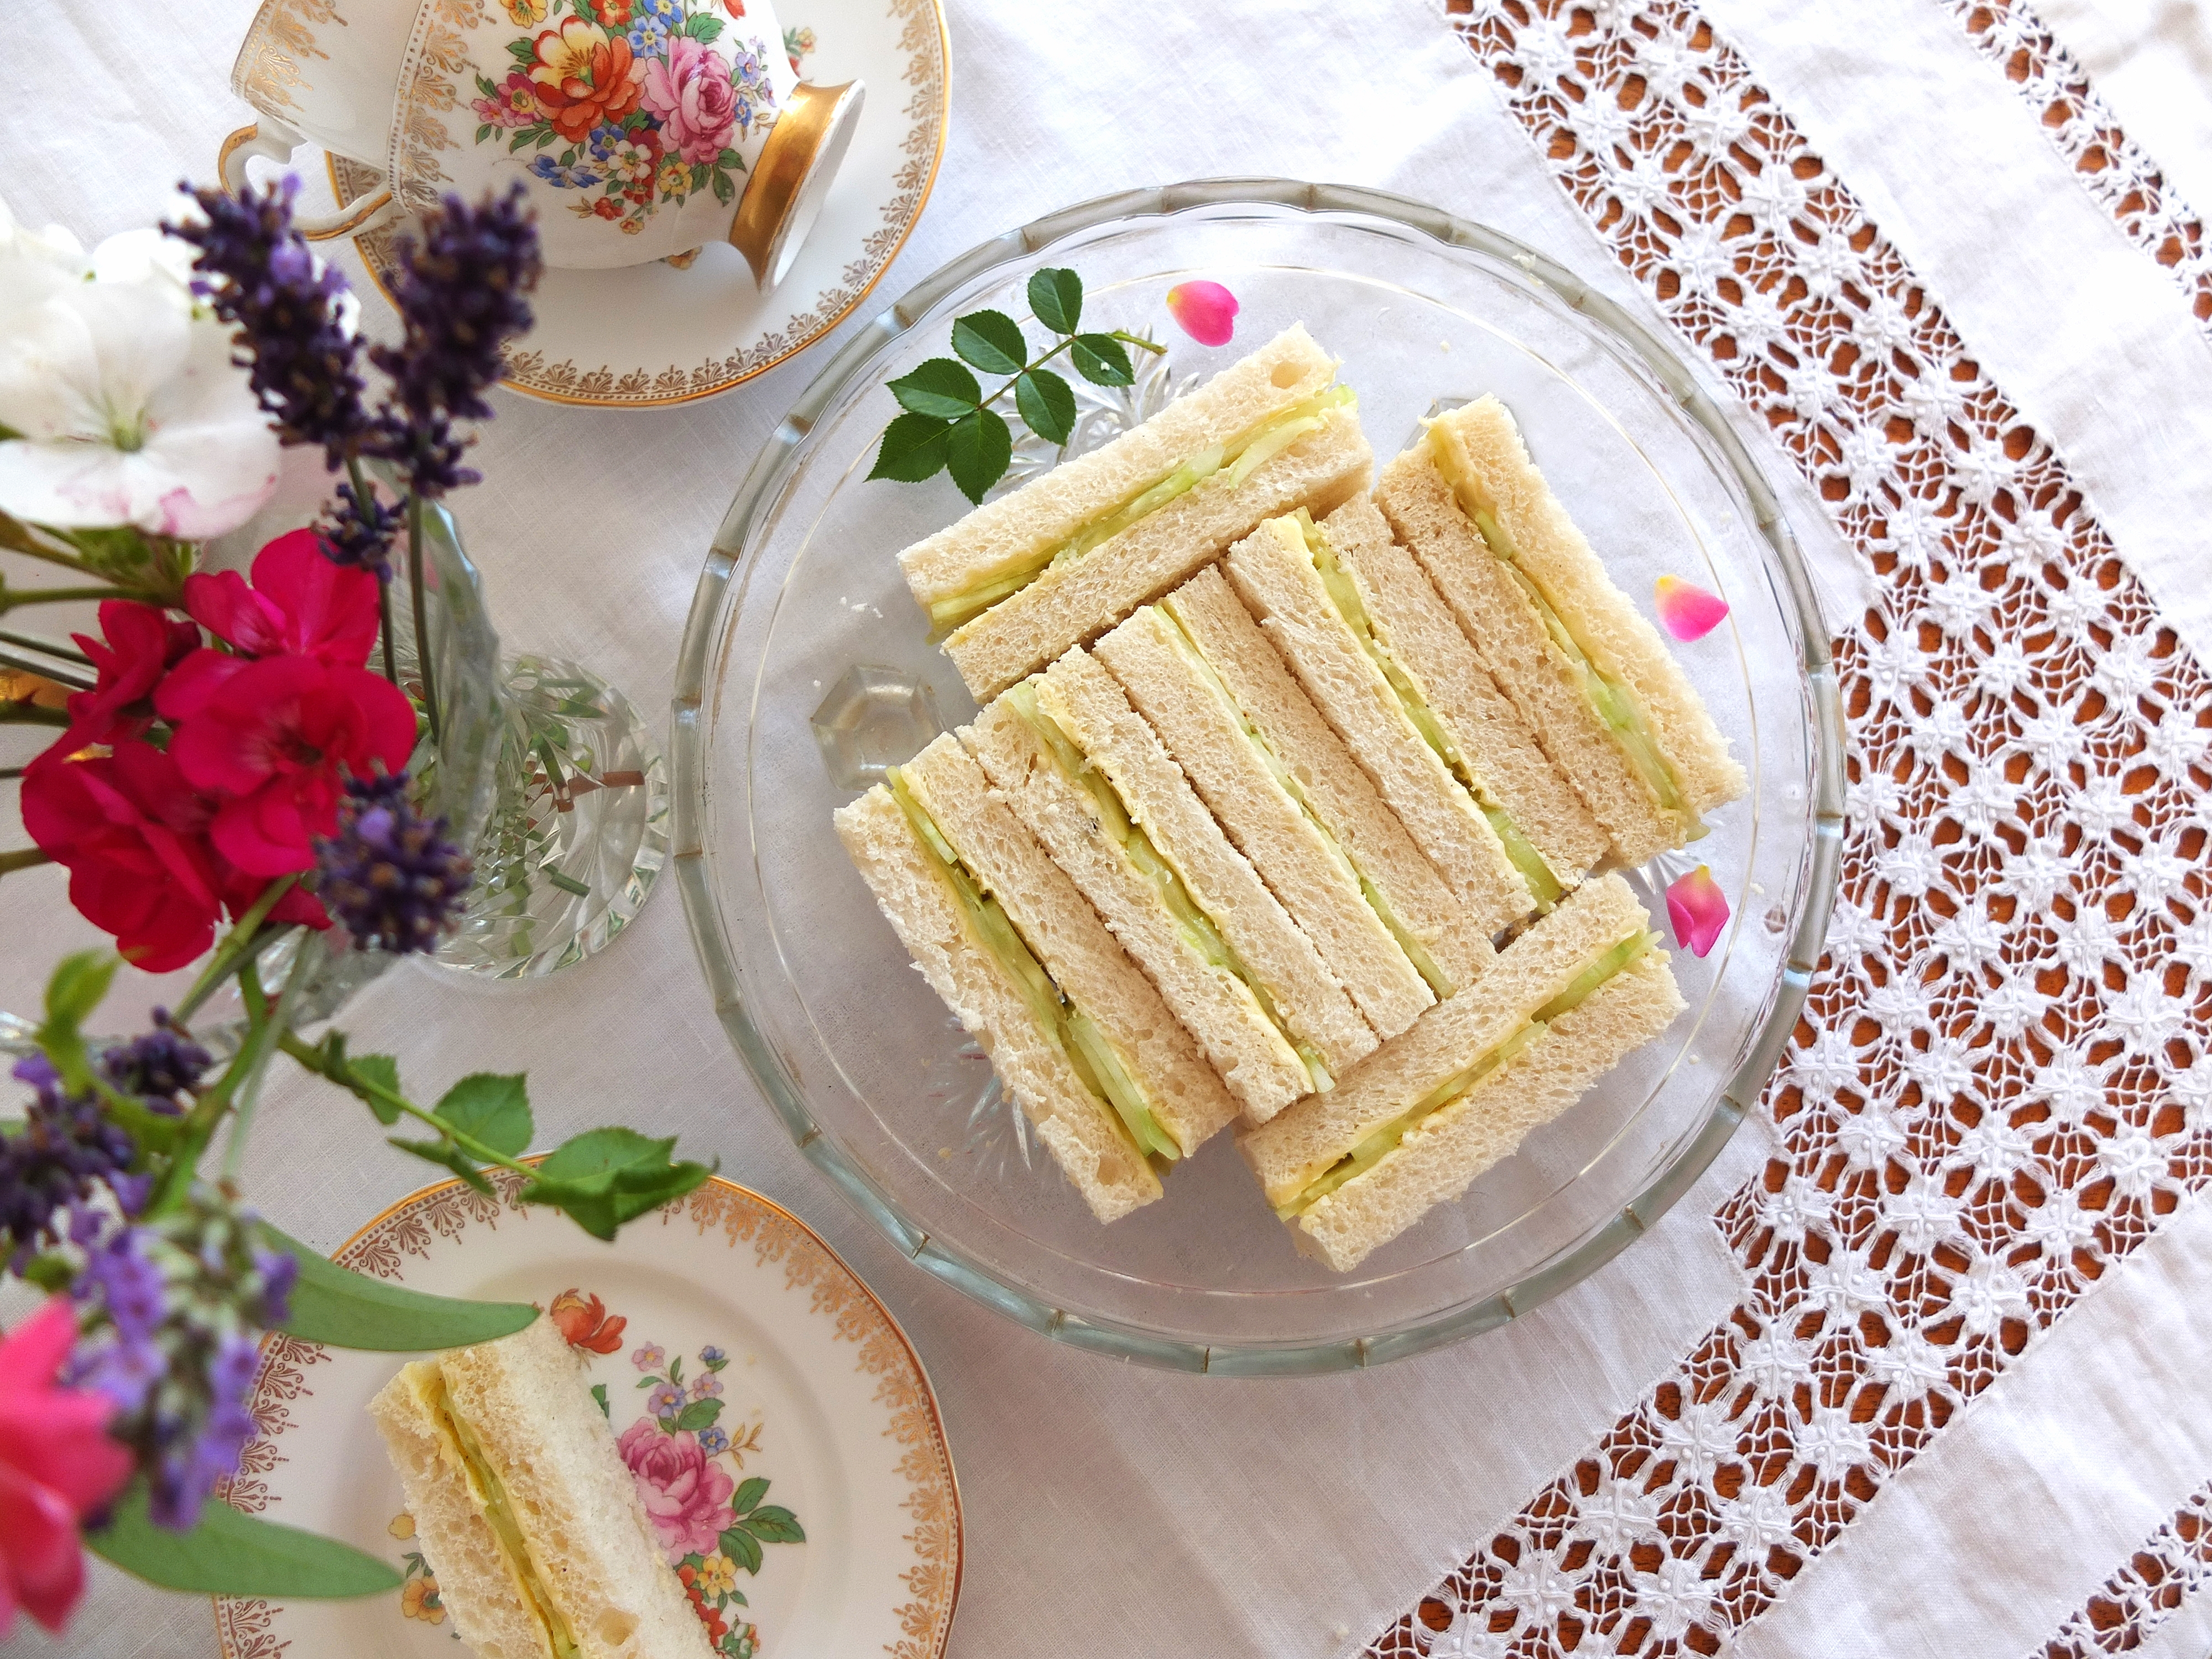 Afternoon tea recipes great british chefs forumfinder Image collections